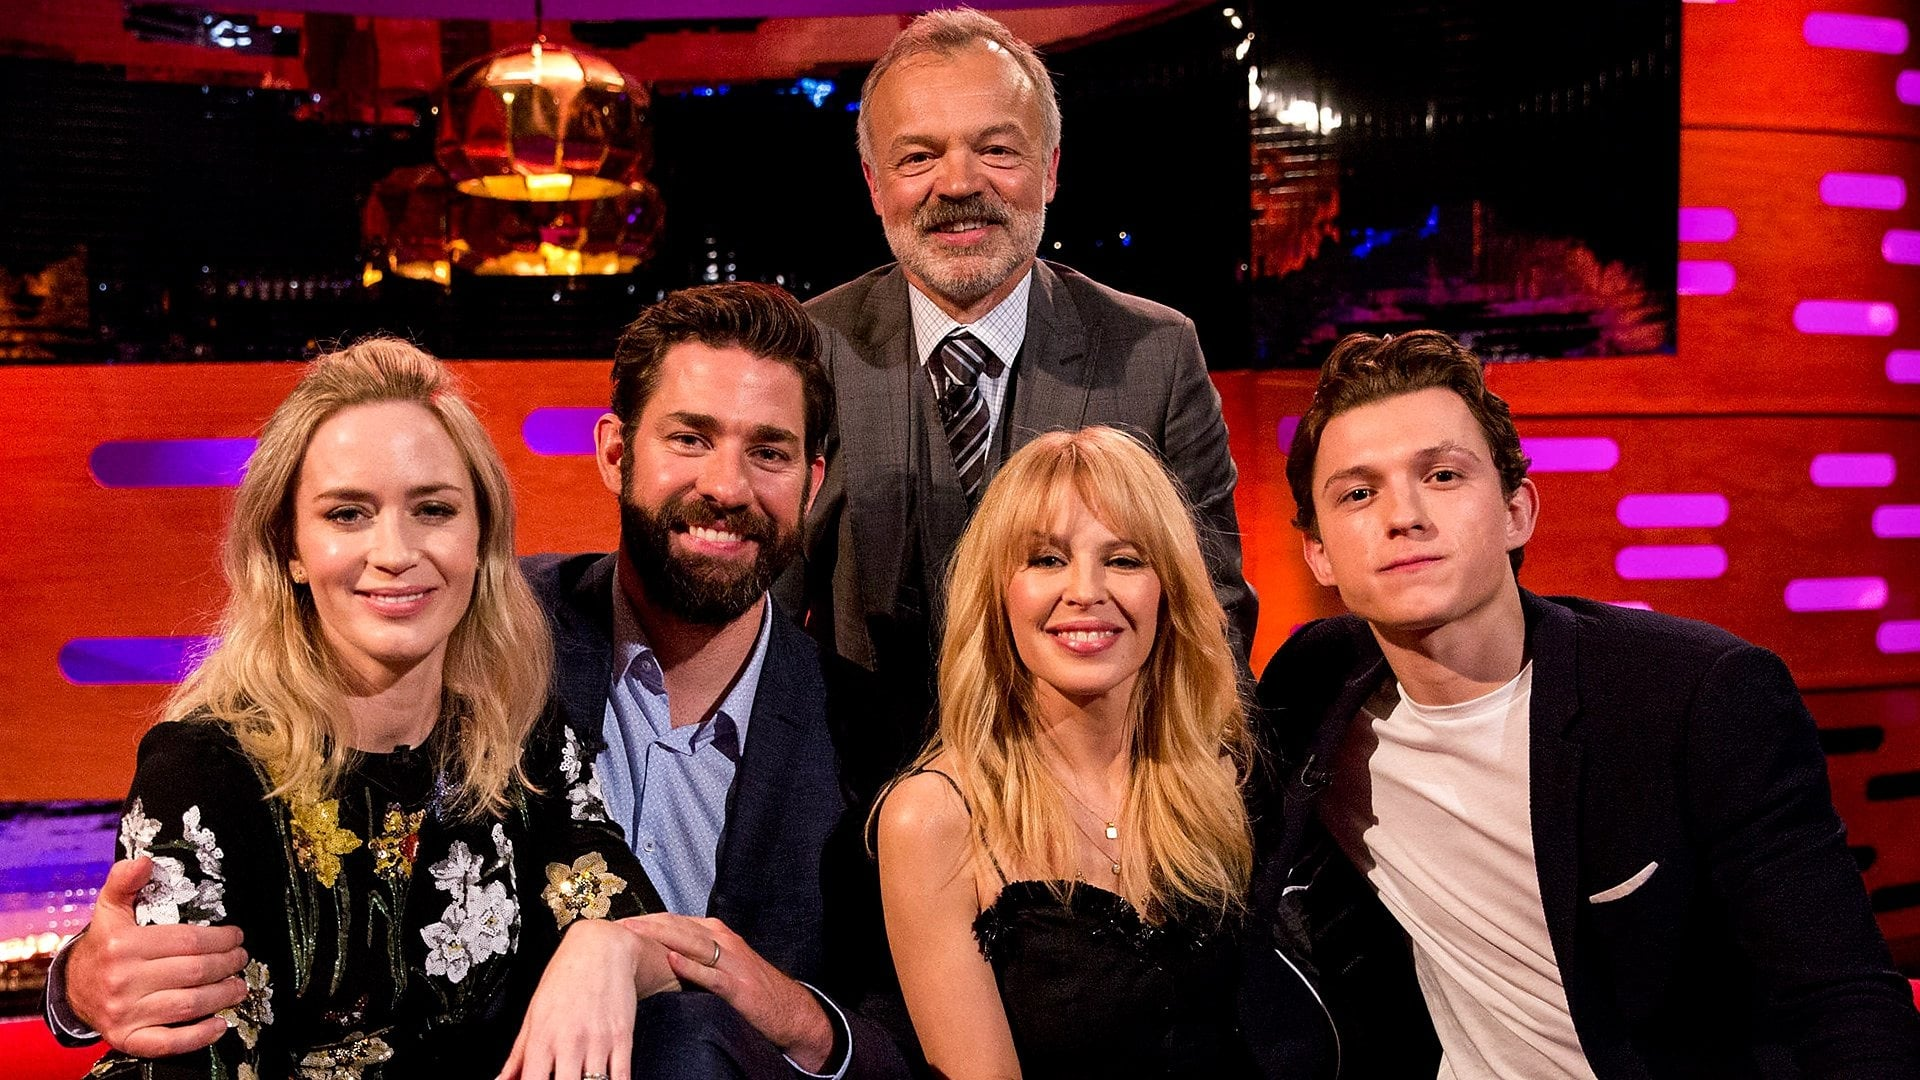 The Graham Norton Show - Season 23 Episode 1 : Emily Blunt, John Krasinski, Tom Holland, Kylie Minogue